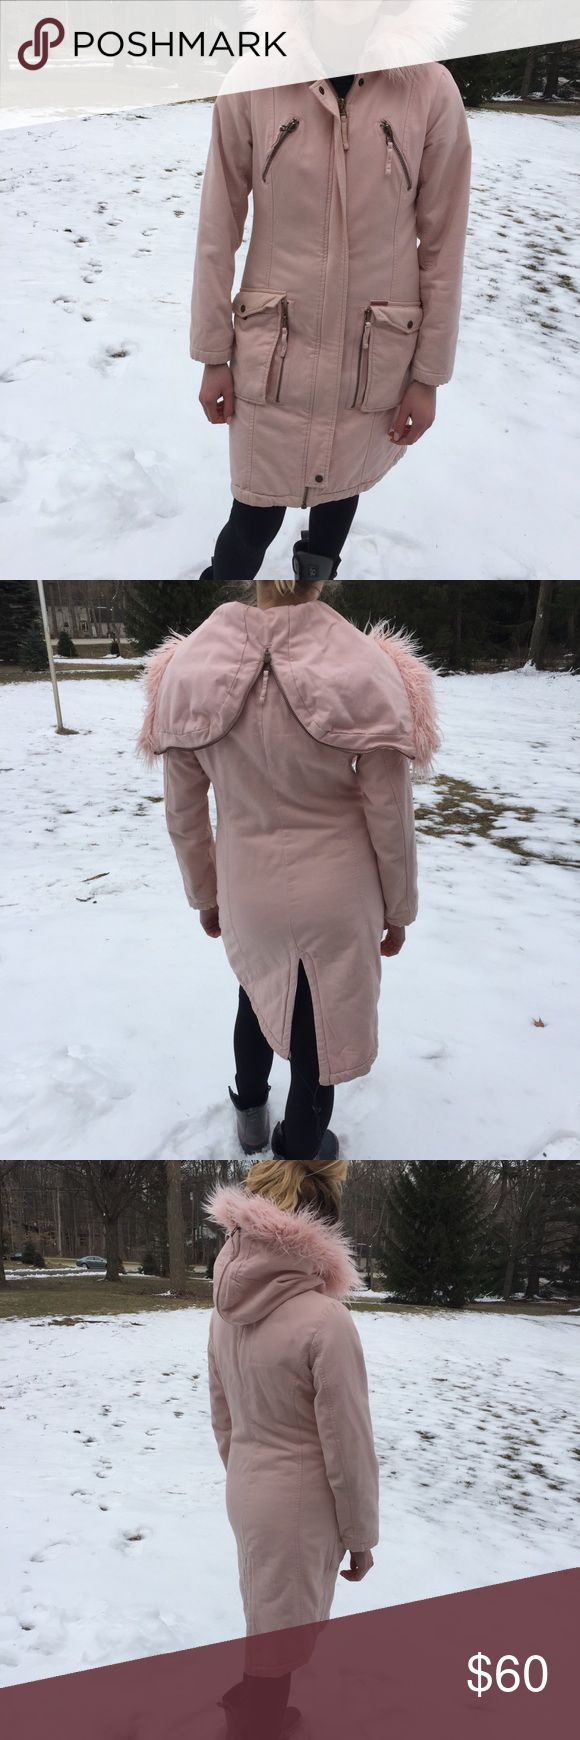 Calvin Klein light pink parka 100% cotton light pink parka. Super warm and cute with warm lining. Fitted shape, unfortunately too small for me :(  small strain on wrist however I imagine taking it to the dry cleaners would take it right out Calvin Klein Jackets & Coats